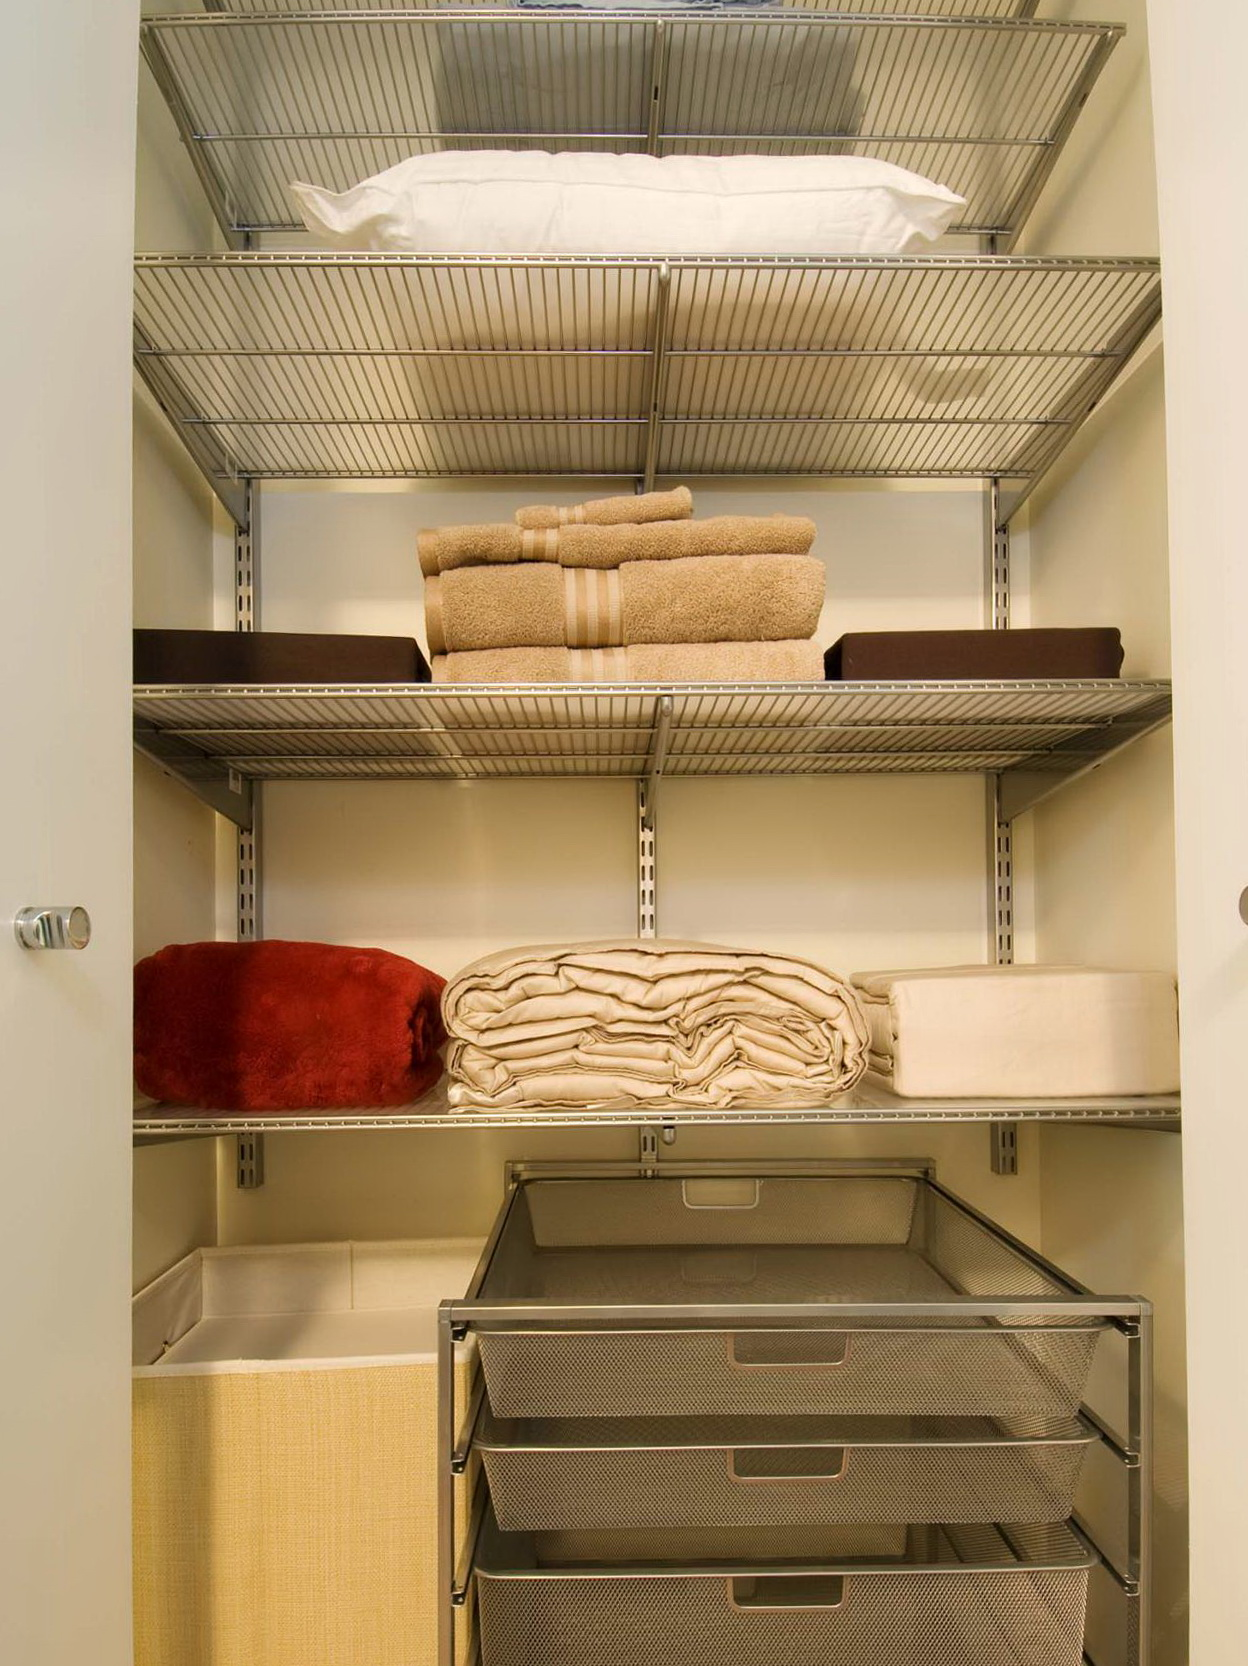 Linen Closet Organizer Systems Deep Hall Closet Organization Home Design Ideas